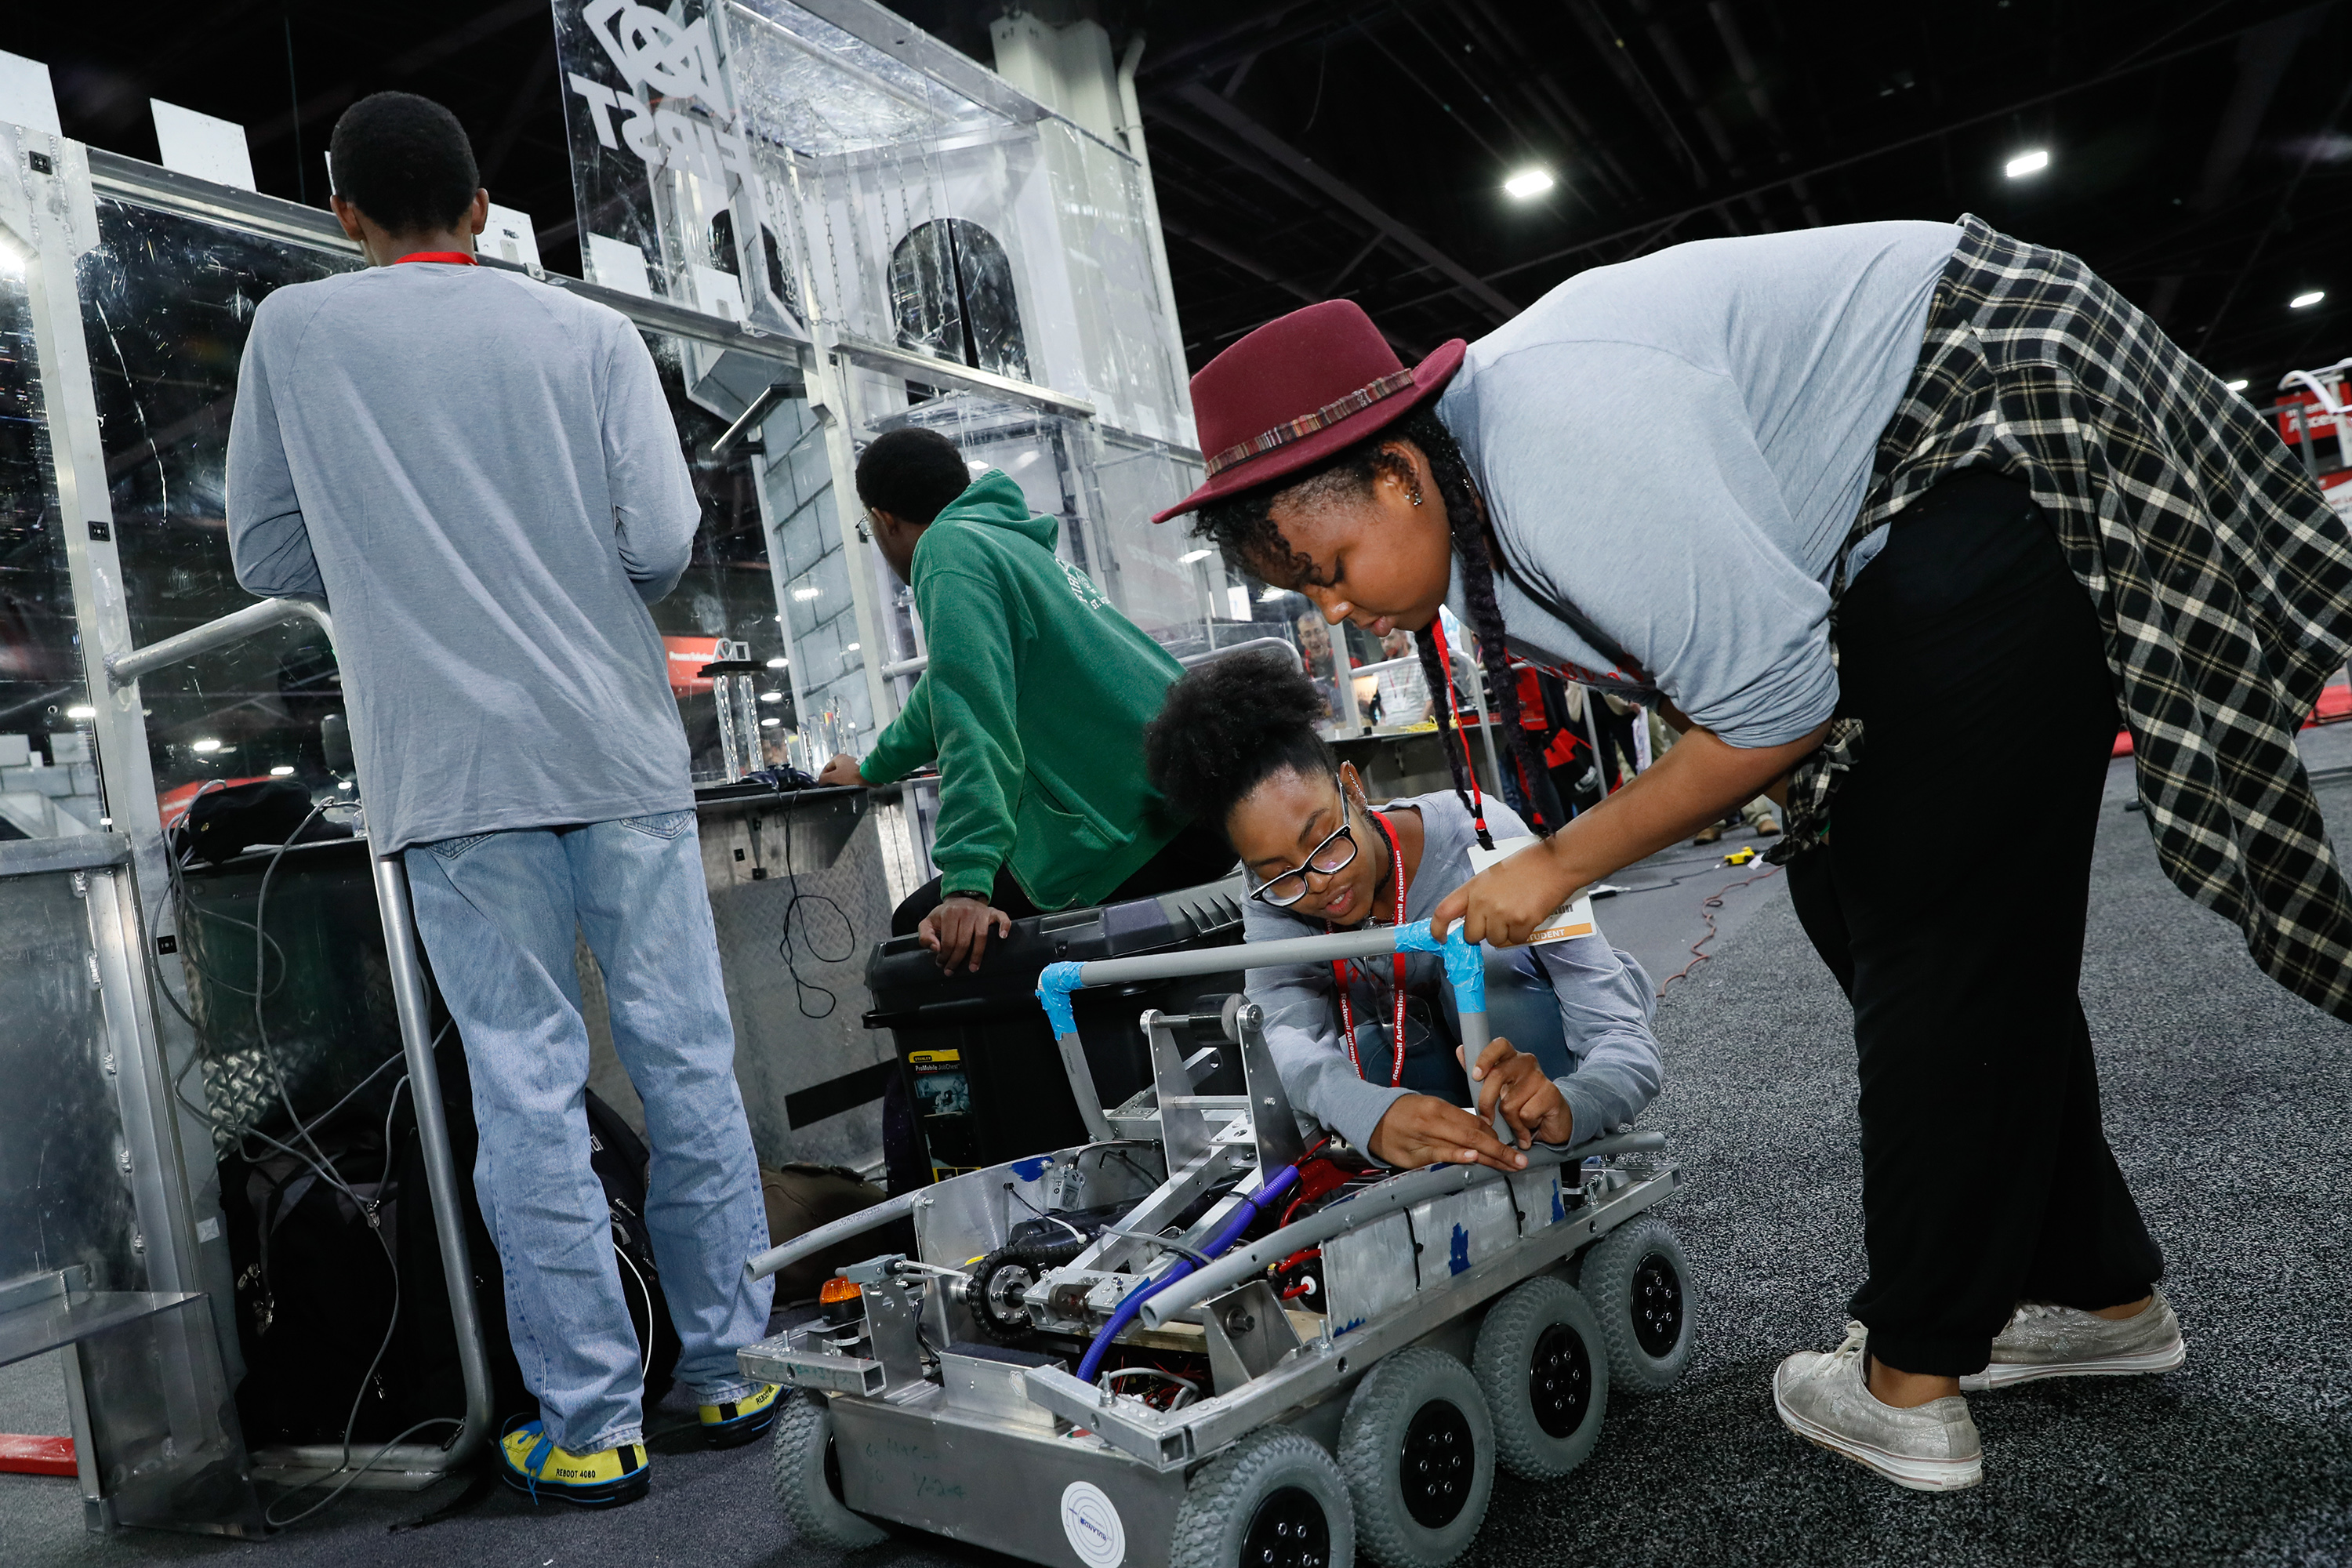 """FIRST Robotics Competition Team 120,  """"Cleveland's Team"""", working on their robot at Automation Fair® (Photo: Business Wire)"""